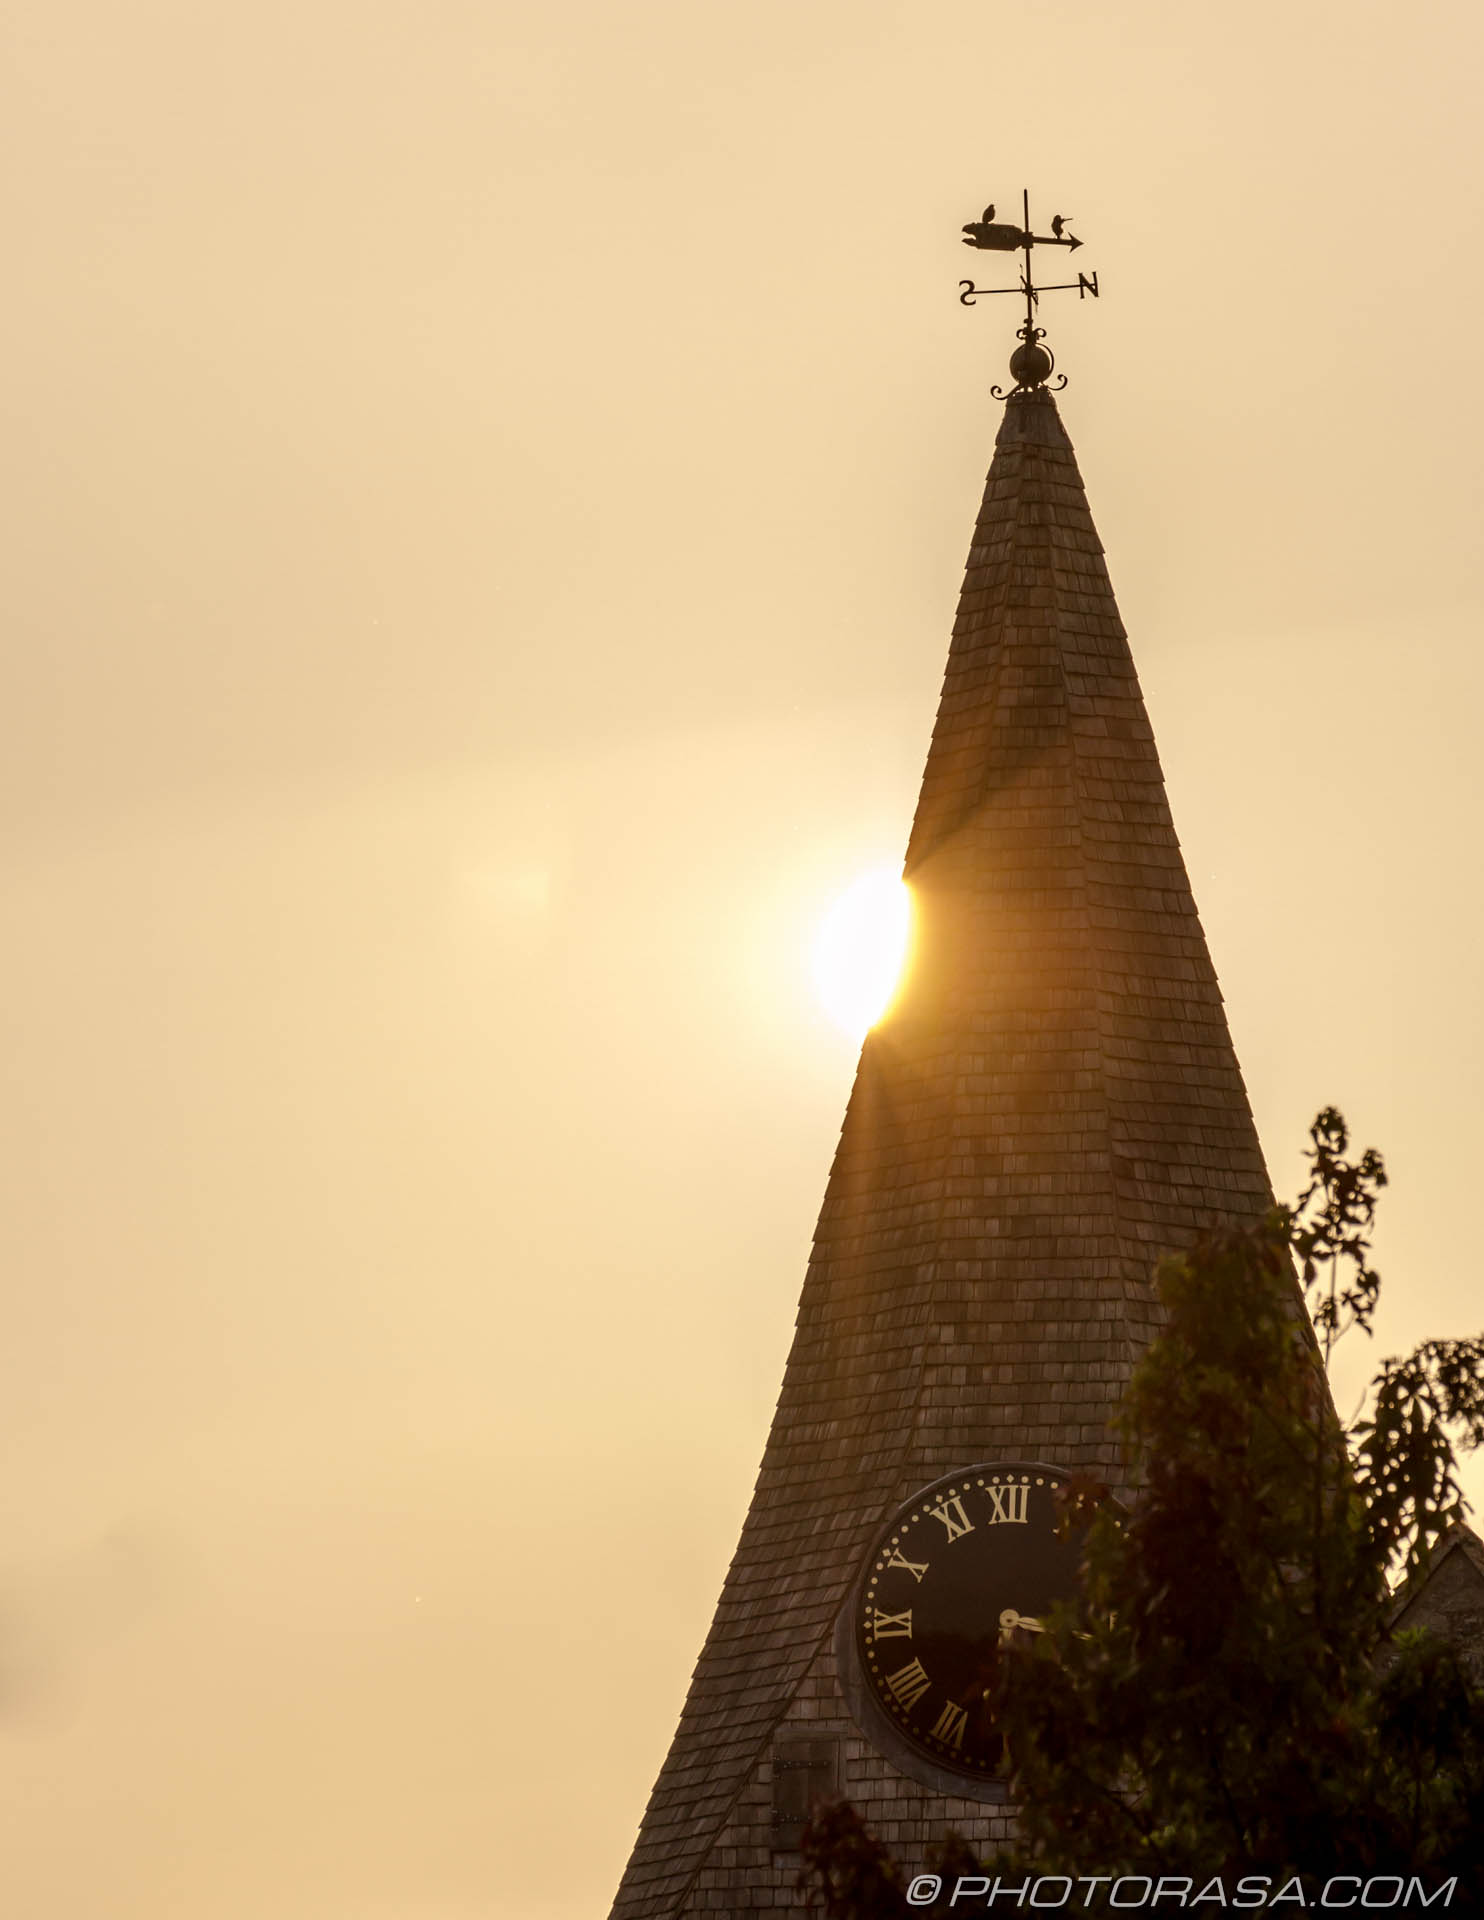 http://photorasa.com/loose-village/sun-peeking-from-behind-loose-church-spire/